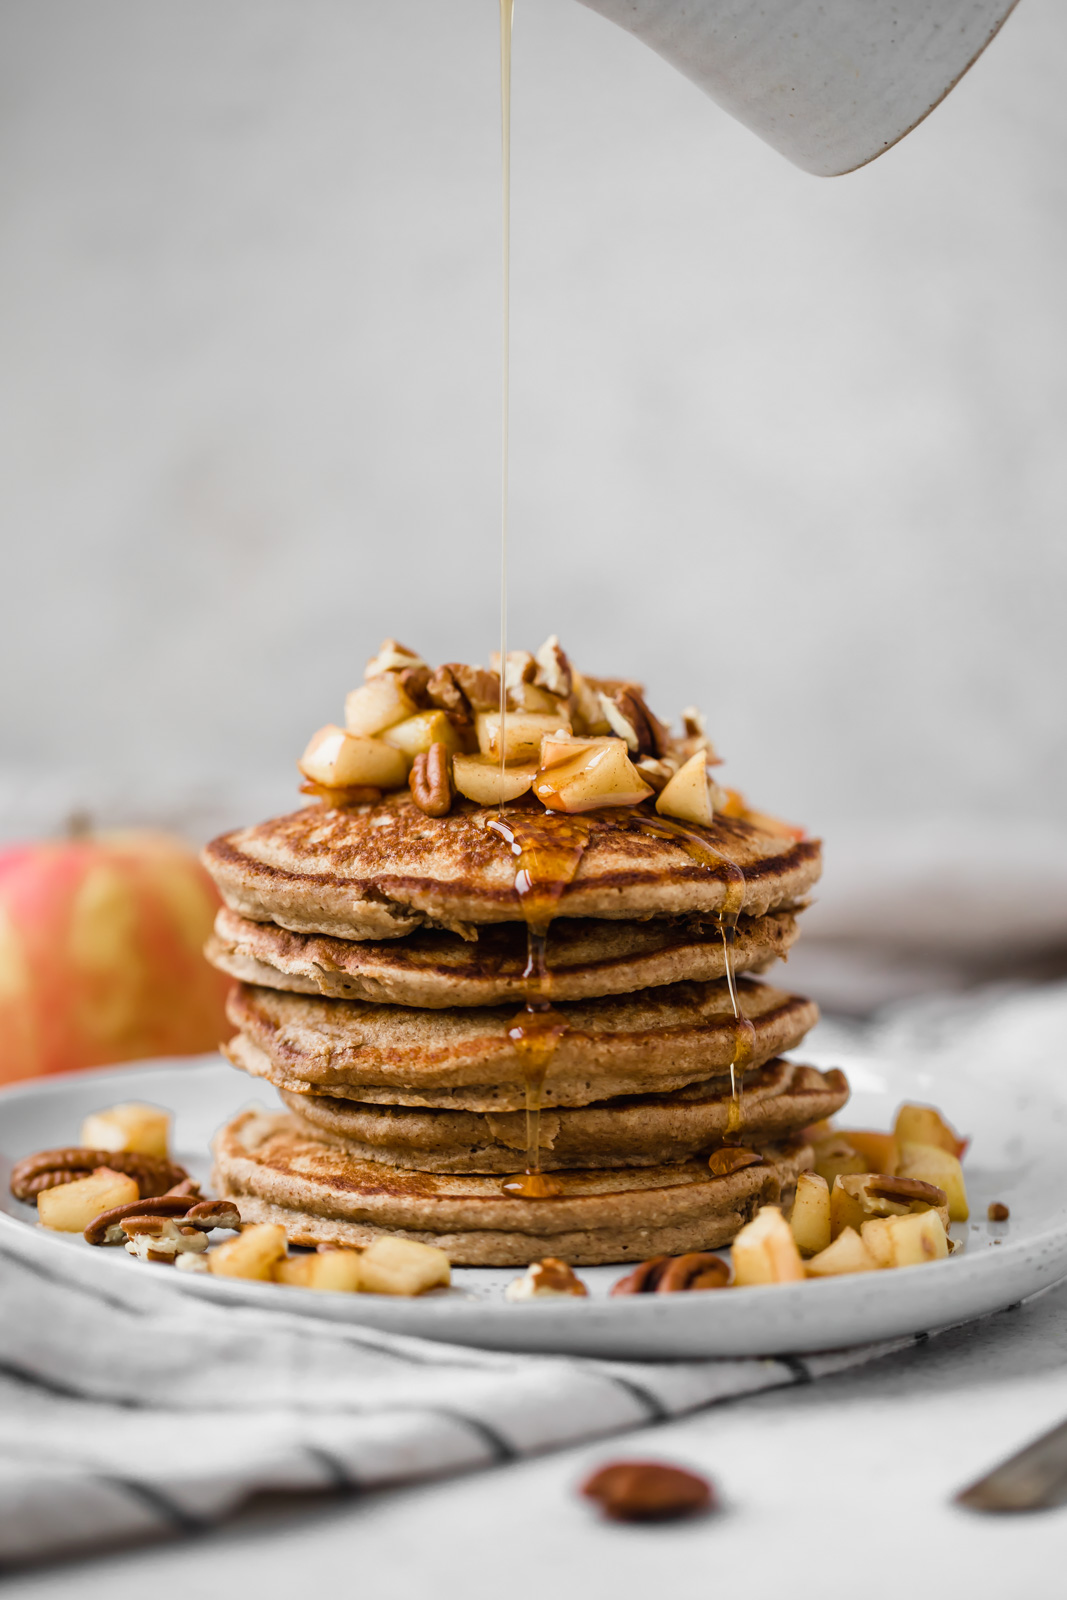 Meal Prep Monday: Apple Pancakes from